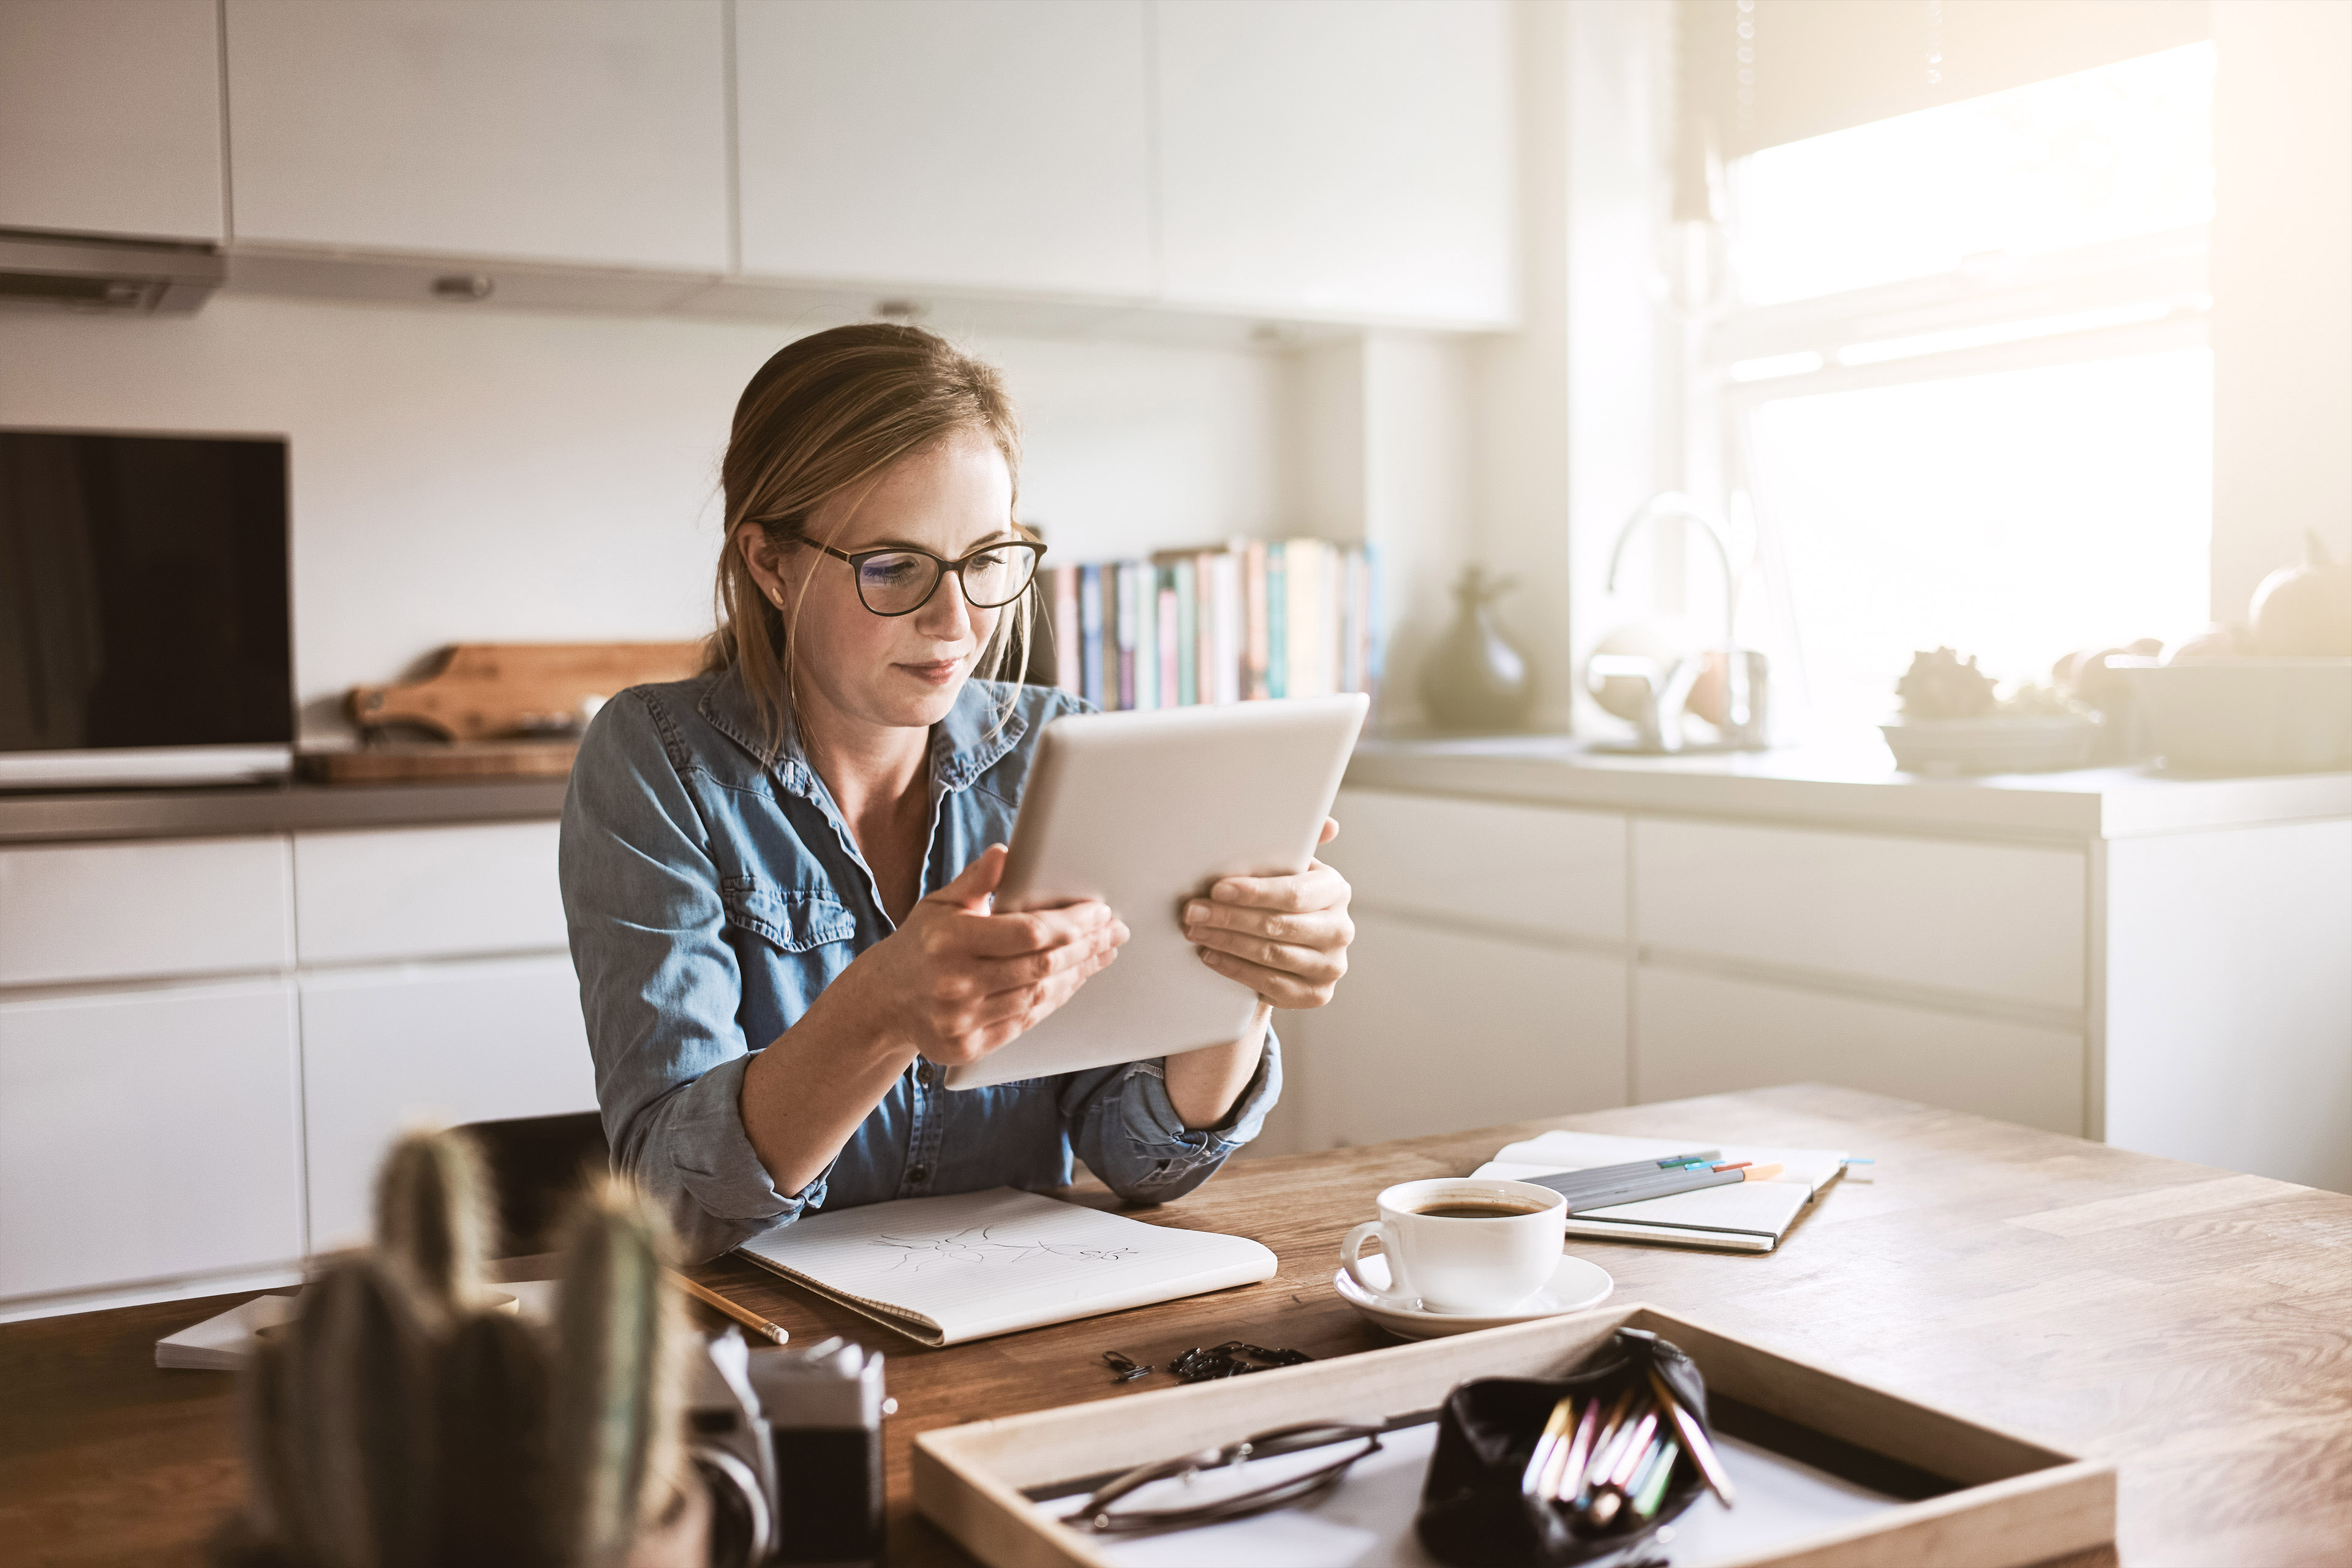 Woman working from home on a digital tablet